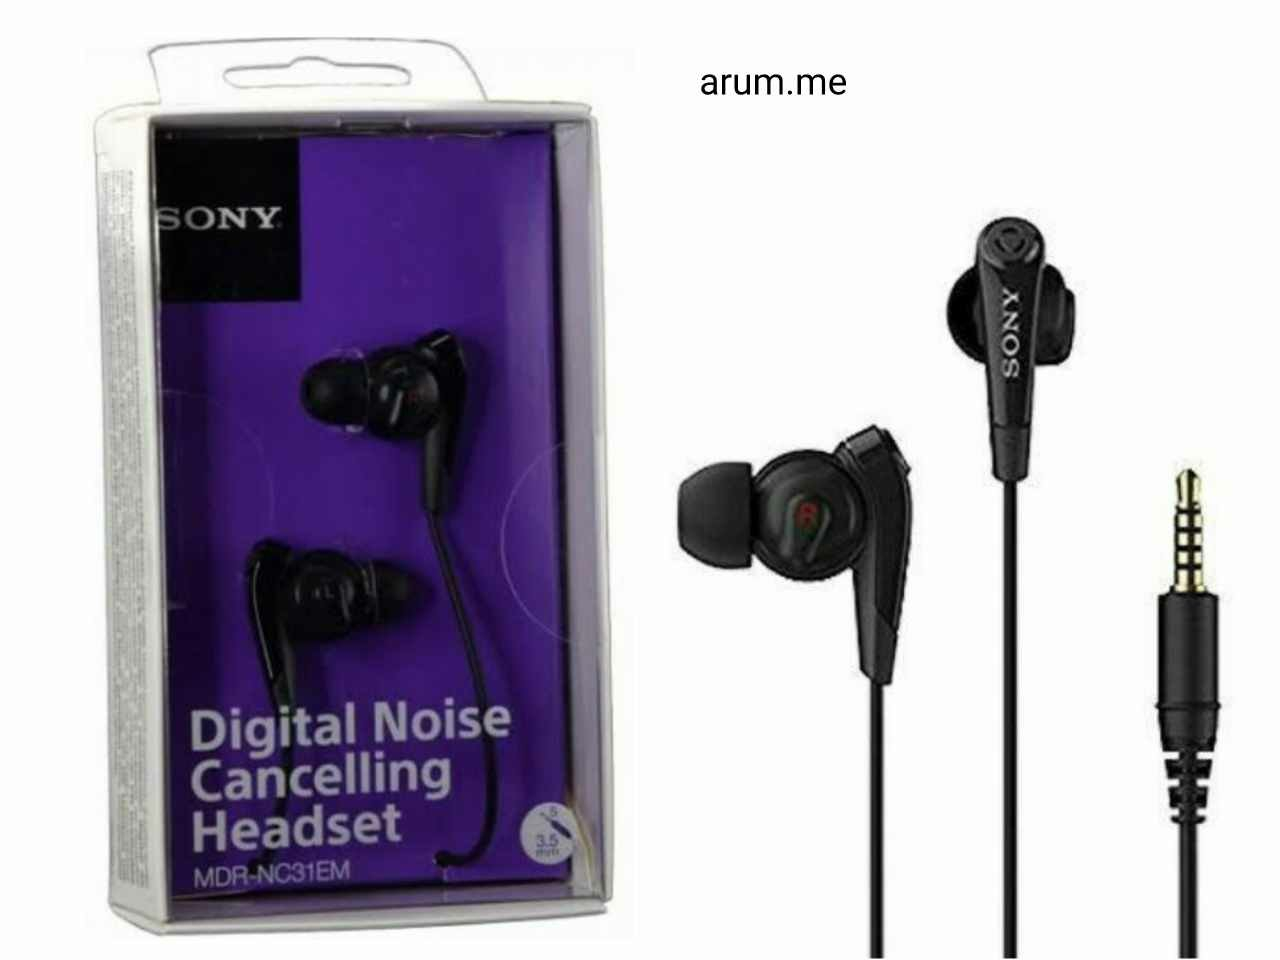 Digital Noise Cancelling Headset Sony MDR-NC31EM | arum.me